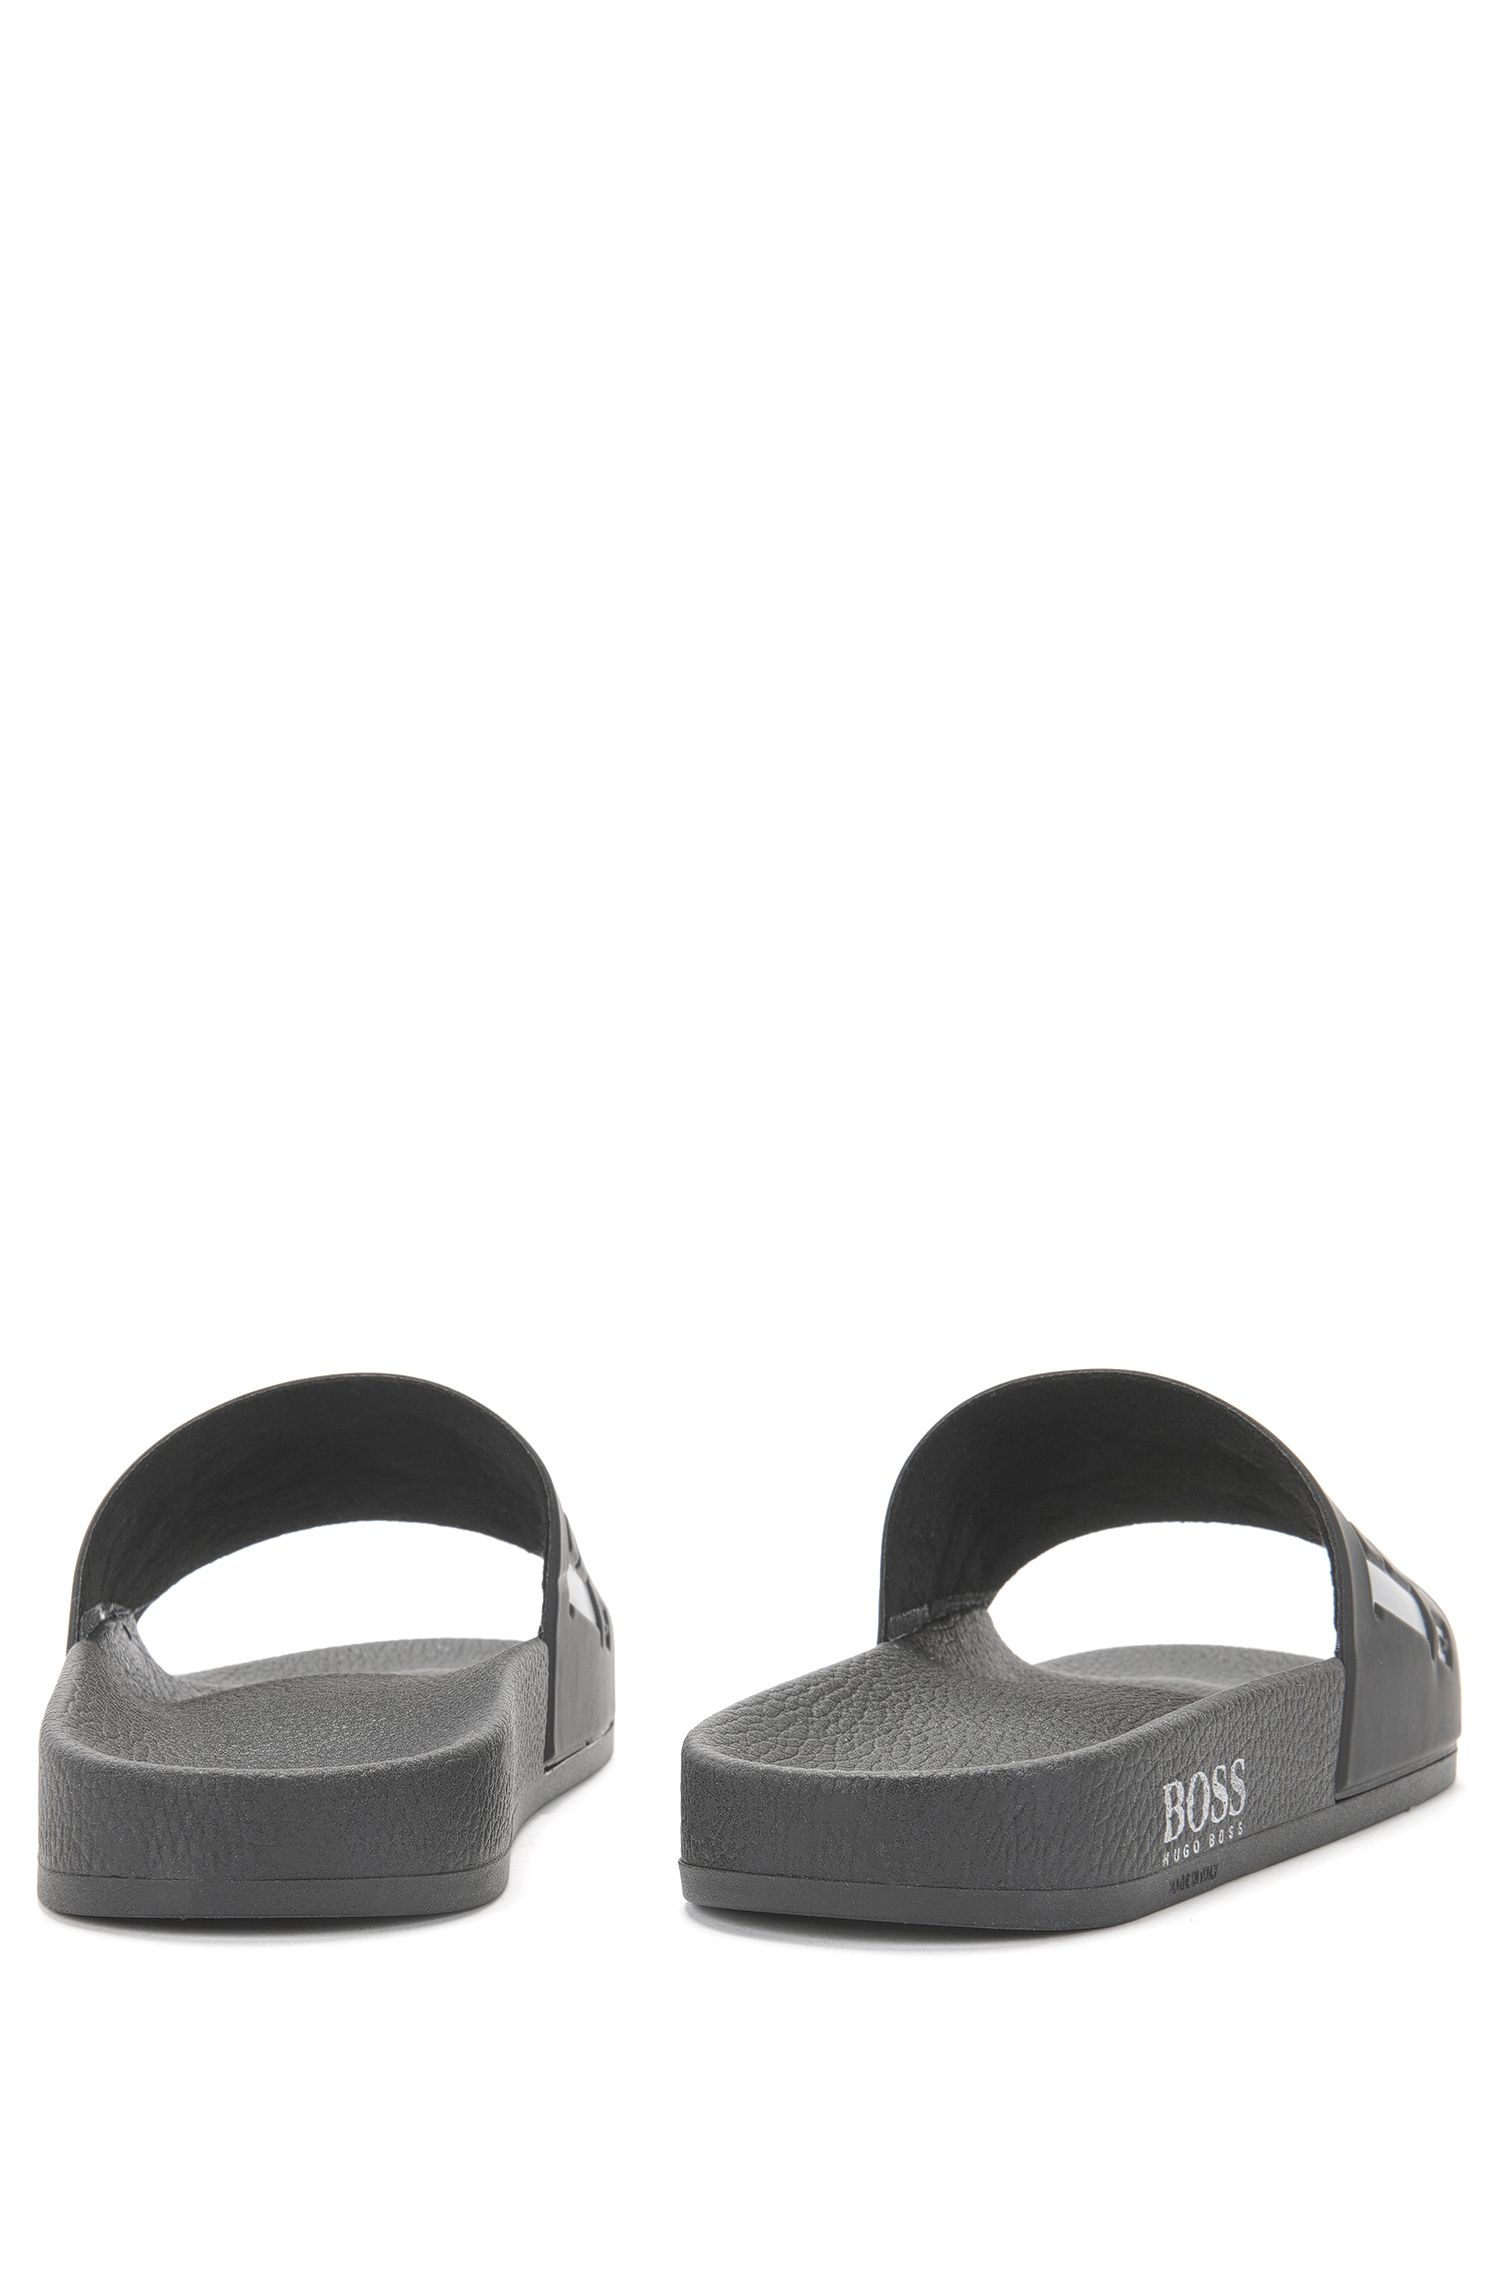 Italian-made rubber slider sandals with contrast logo